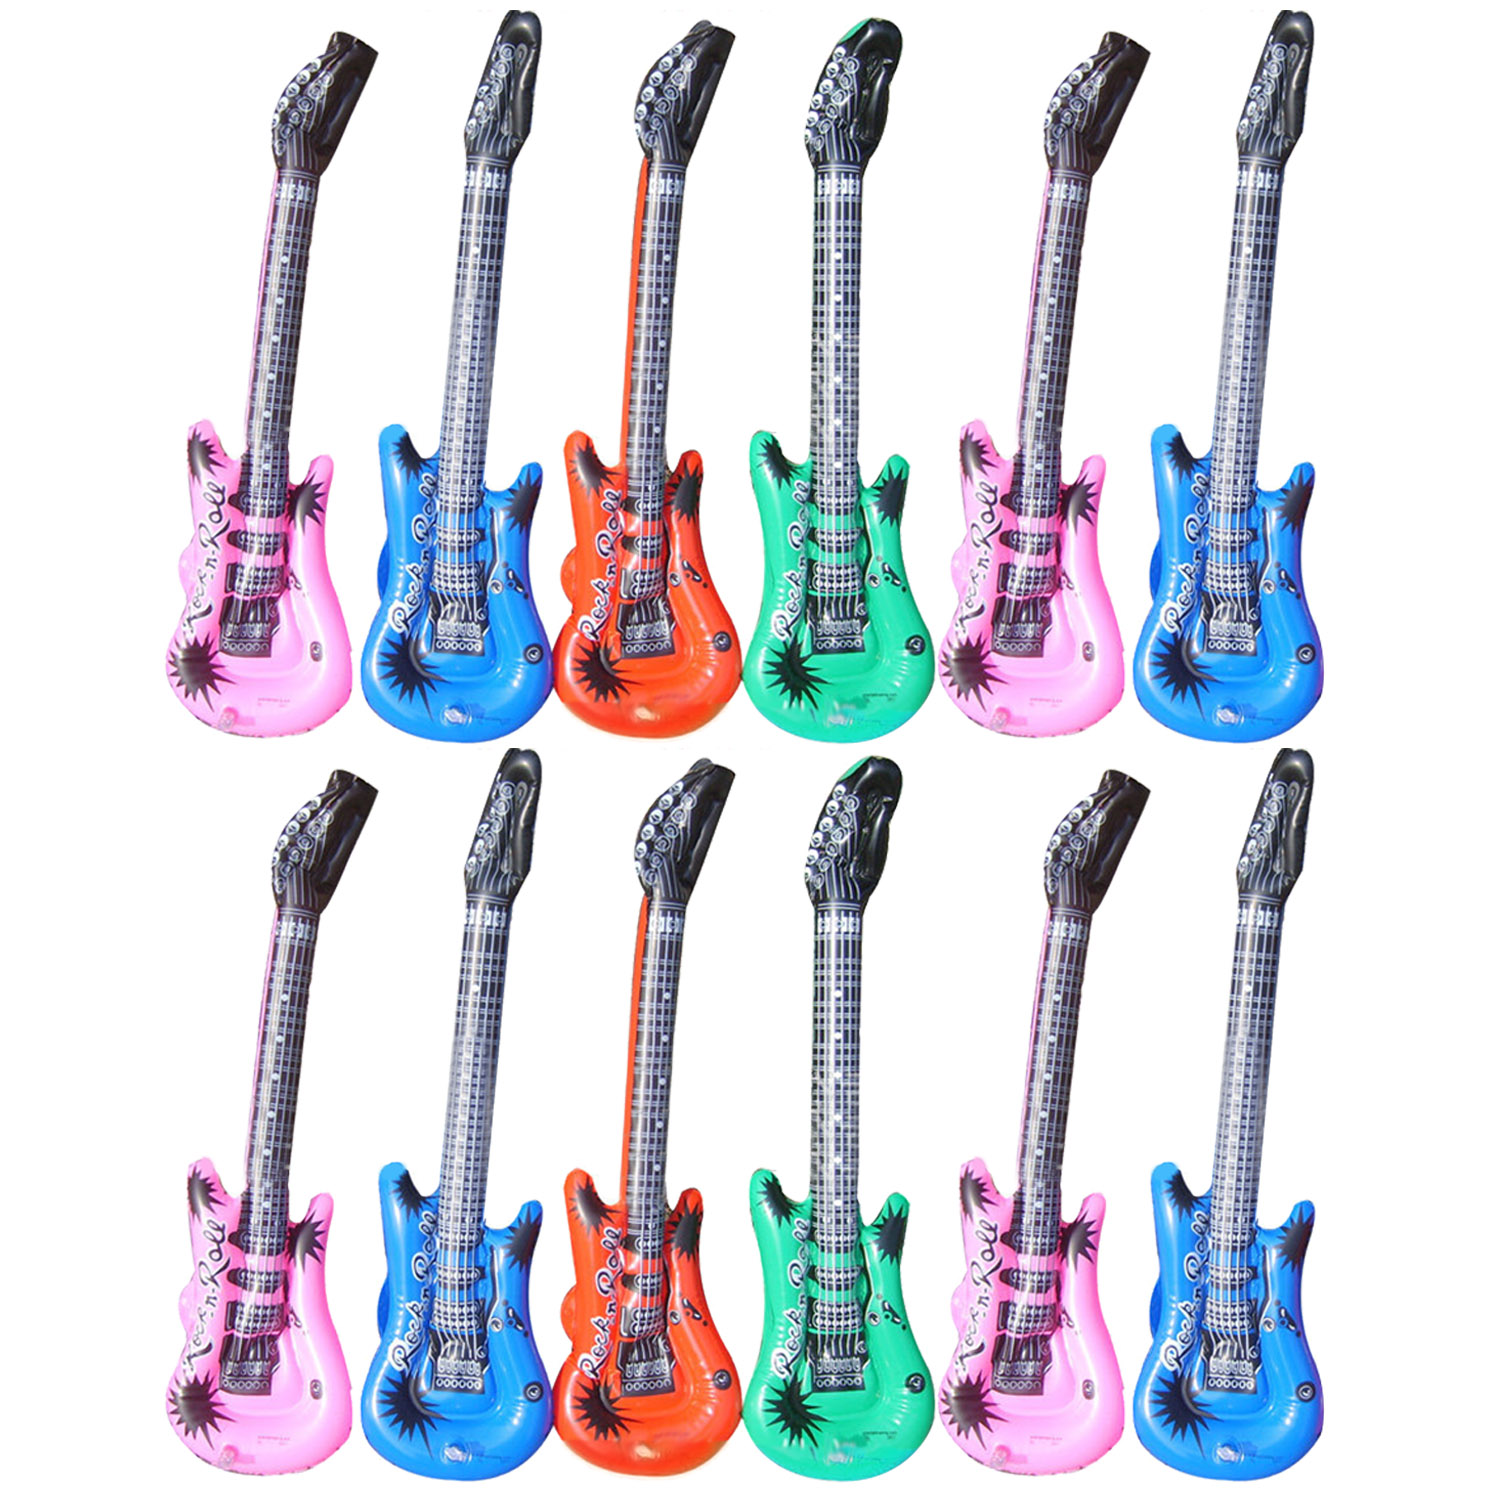 Kids 12PCS Cartoon Colorful Inflatable Guitar Shape PVC Balloons Musical Instruments Air Balloon Concert Pool Party Decor Toy